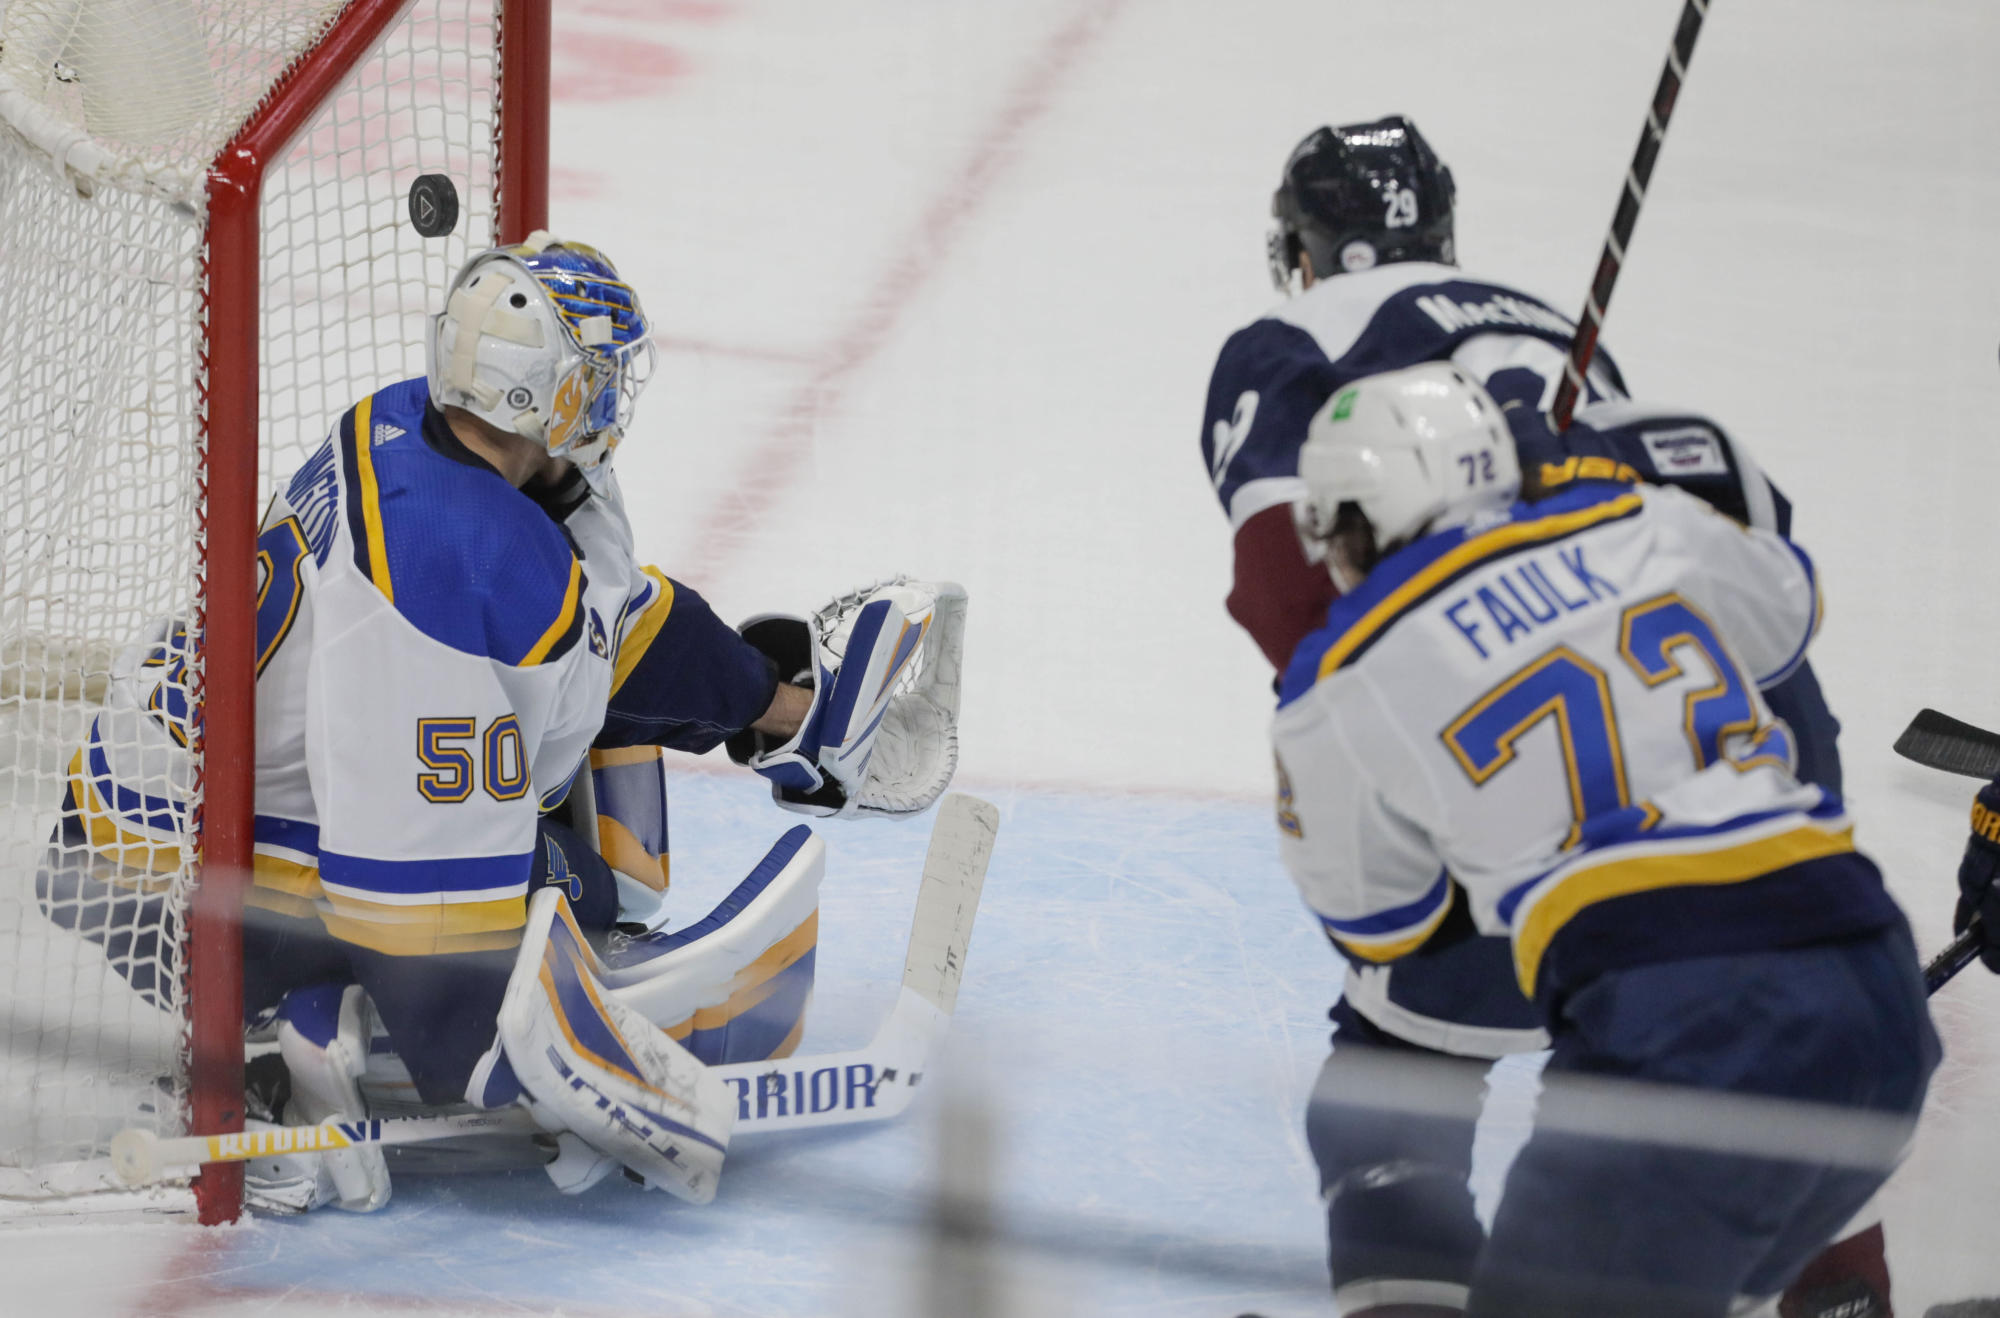 Avalanche continue to bury opponents